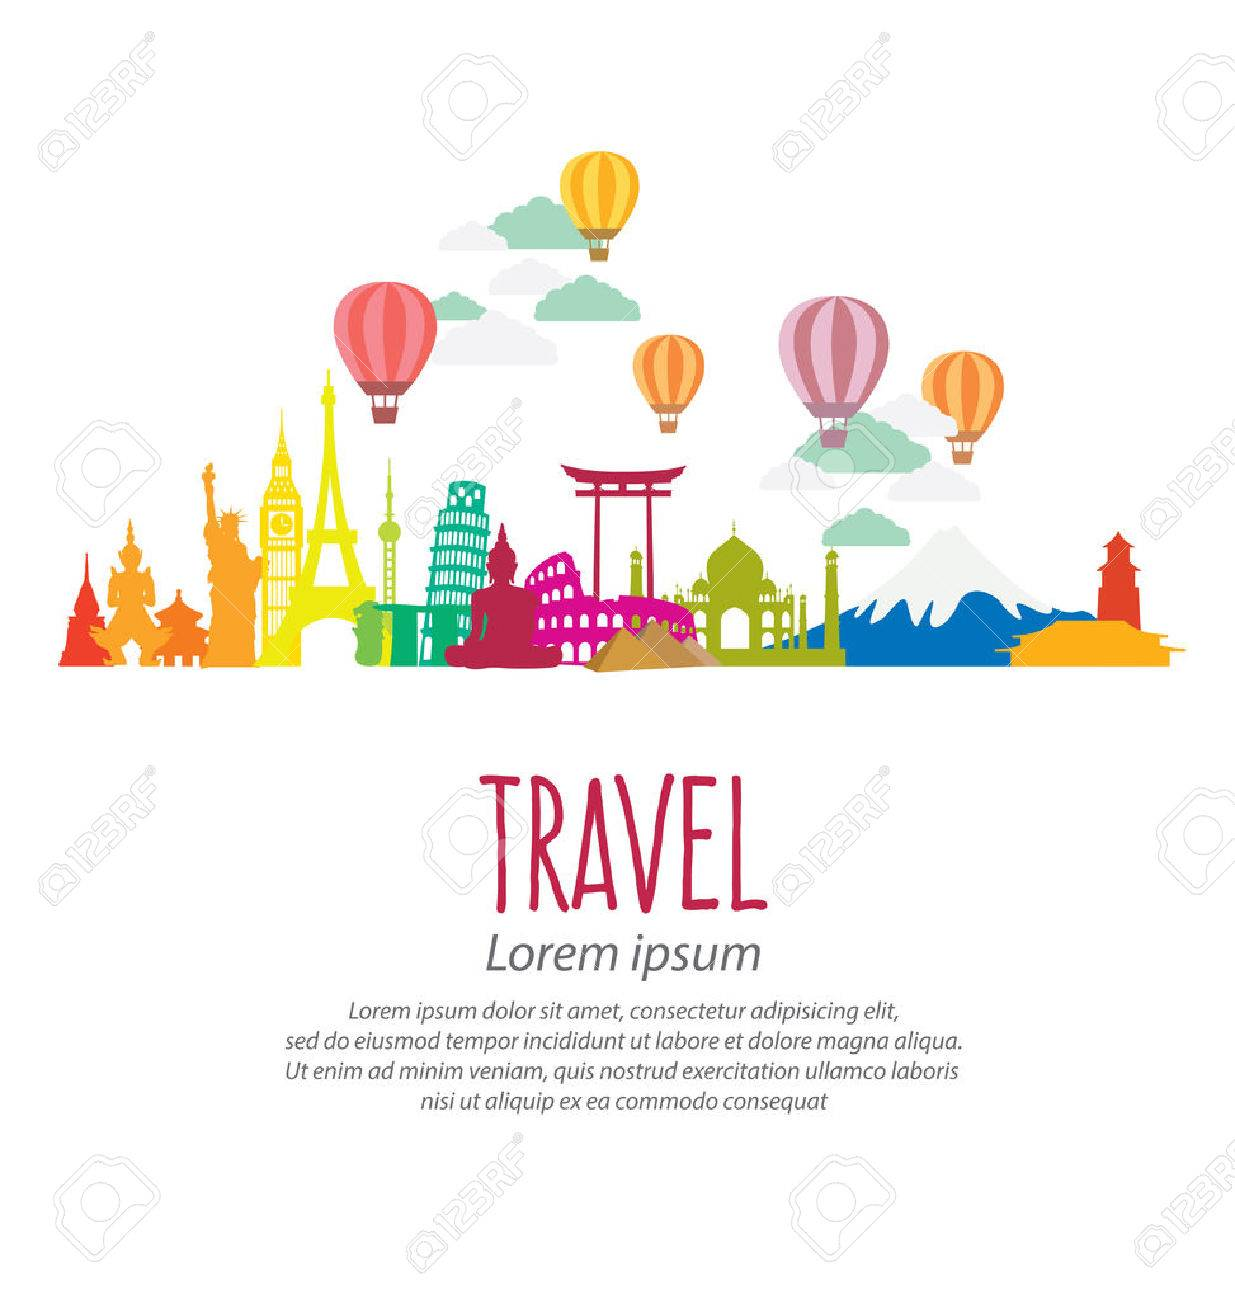 Travel and tourism concept - 42907313